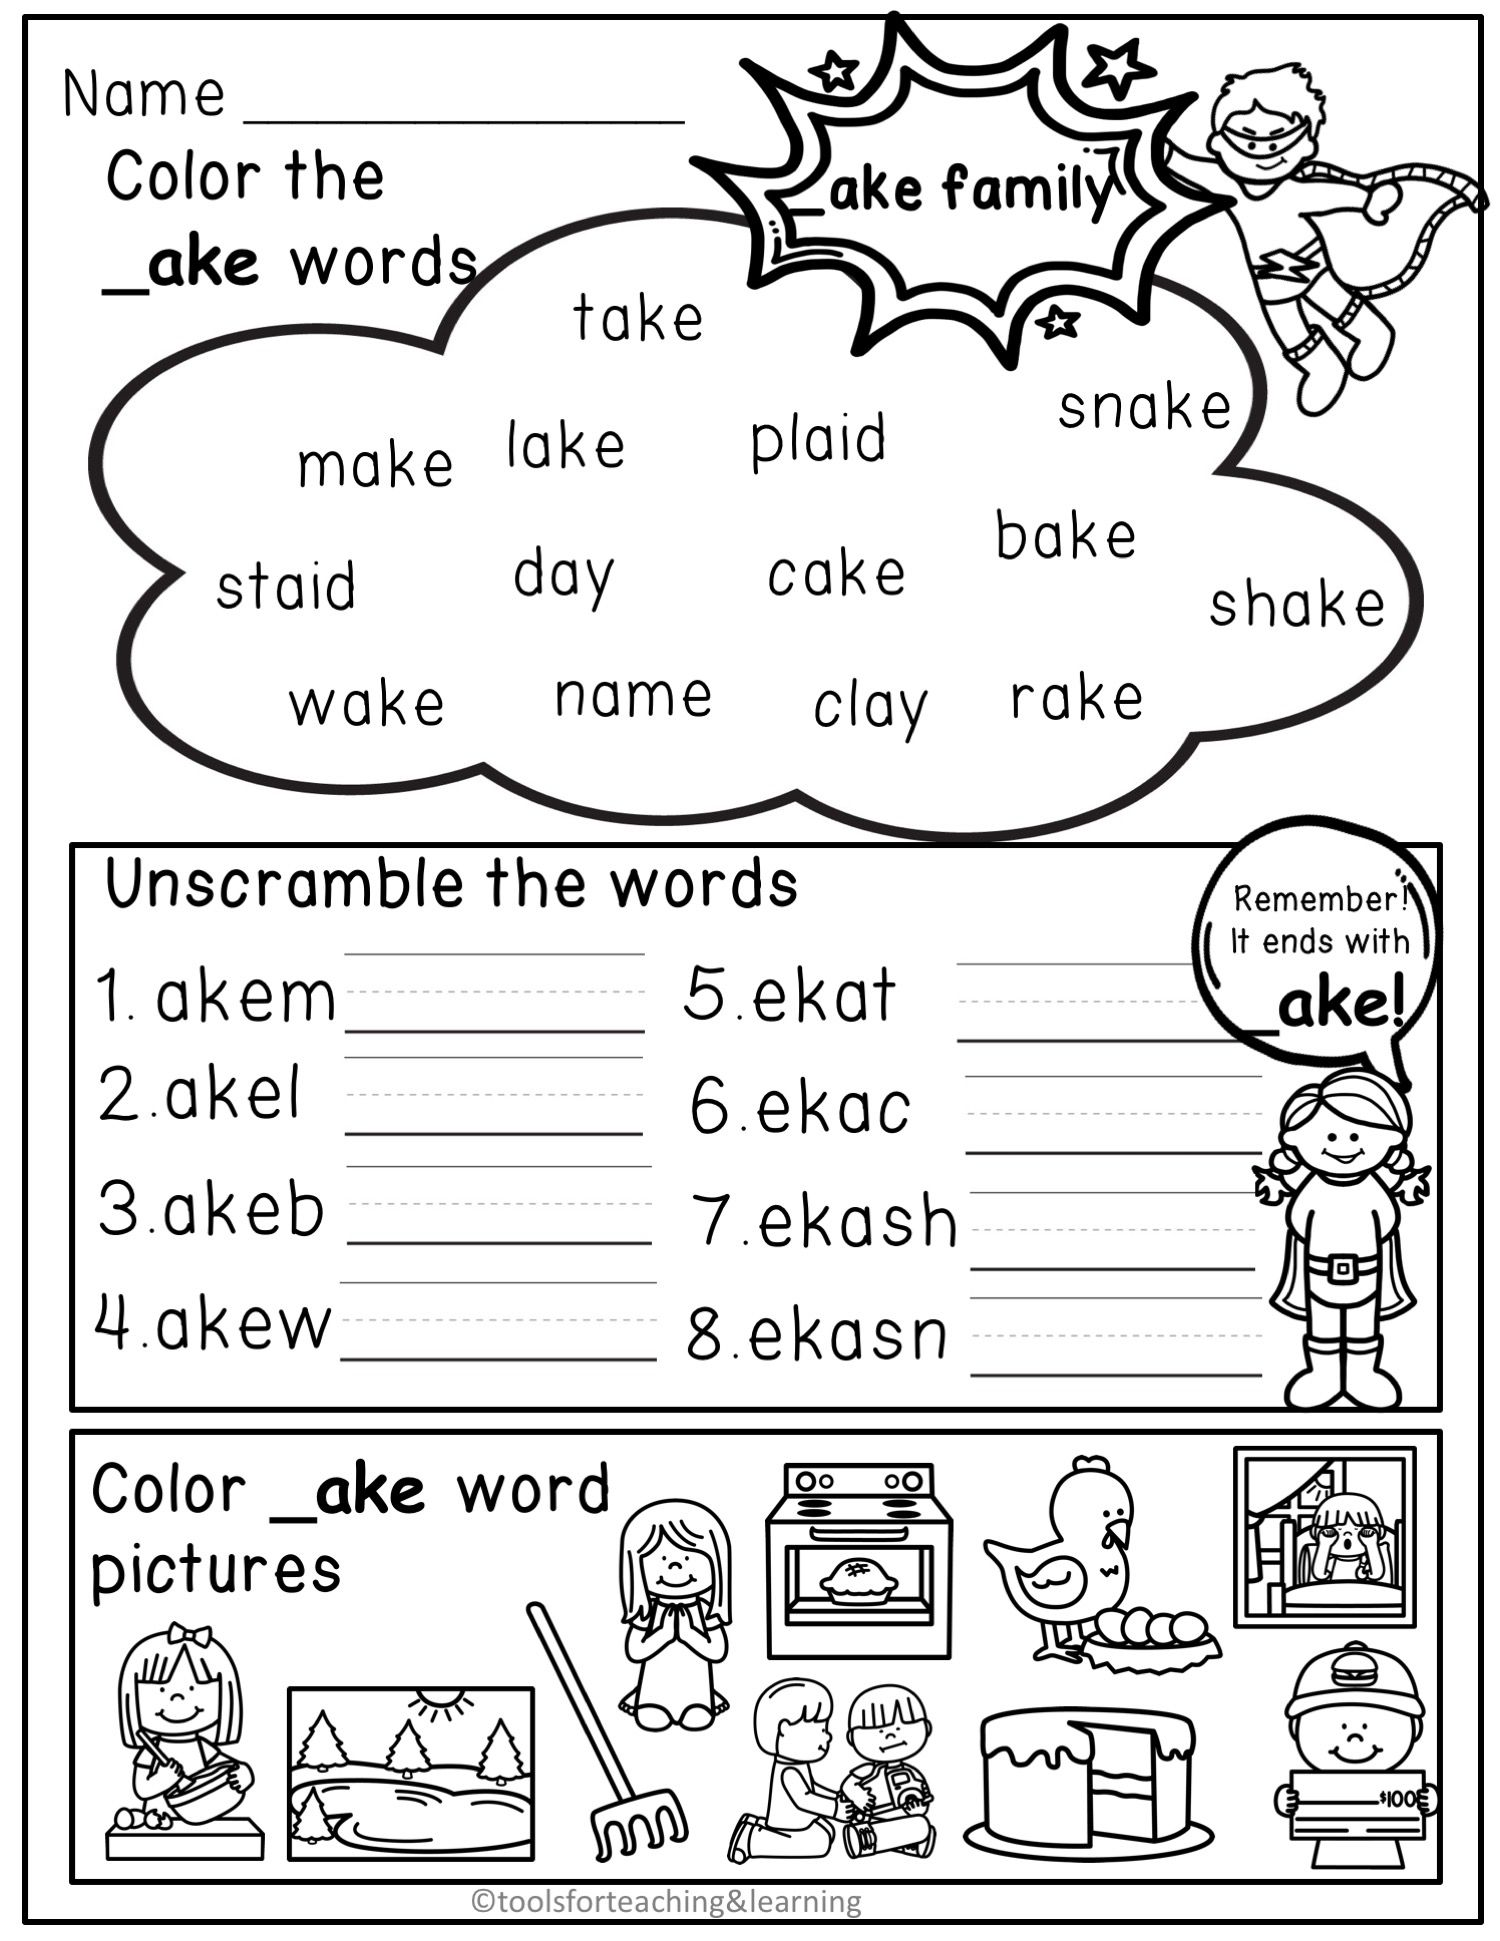 Pin By Tools For Teaching Learning On English Phonic Word Families Word Family Worksheets Word Families Kindergarten Word Families